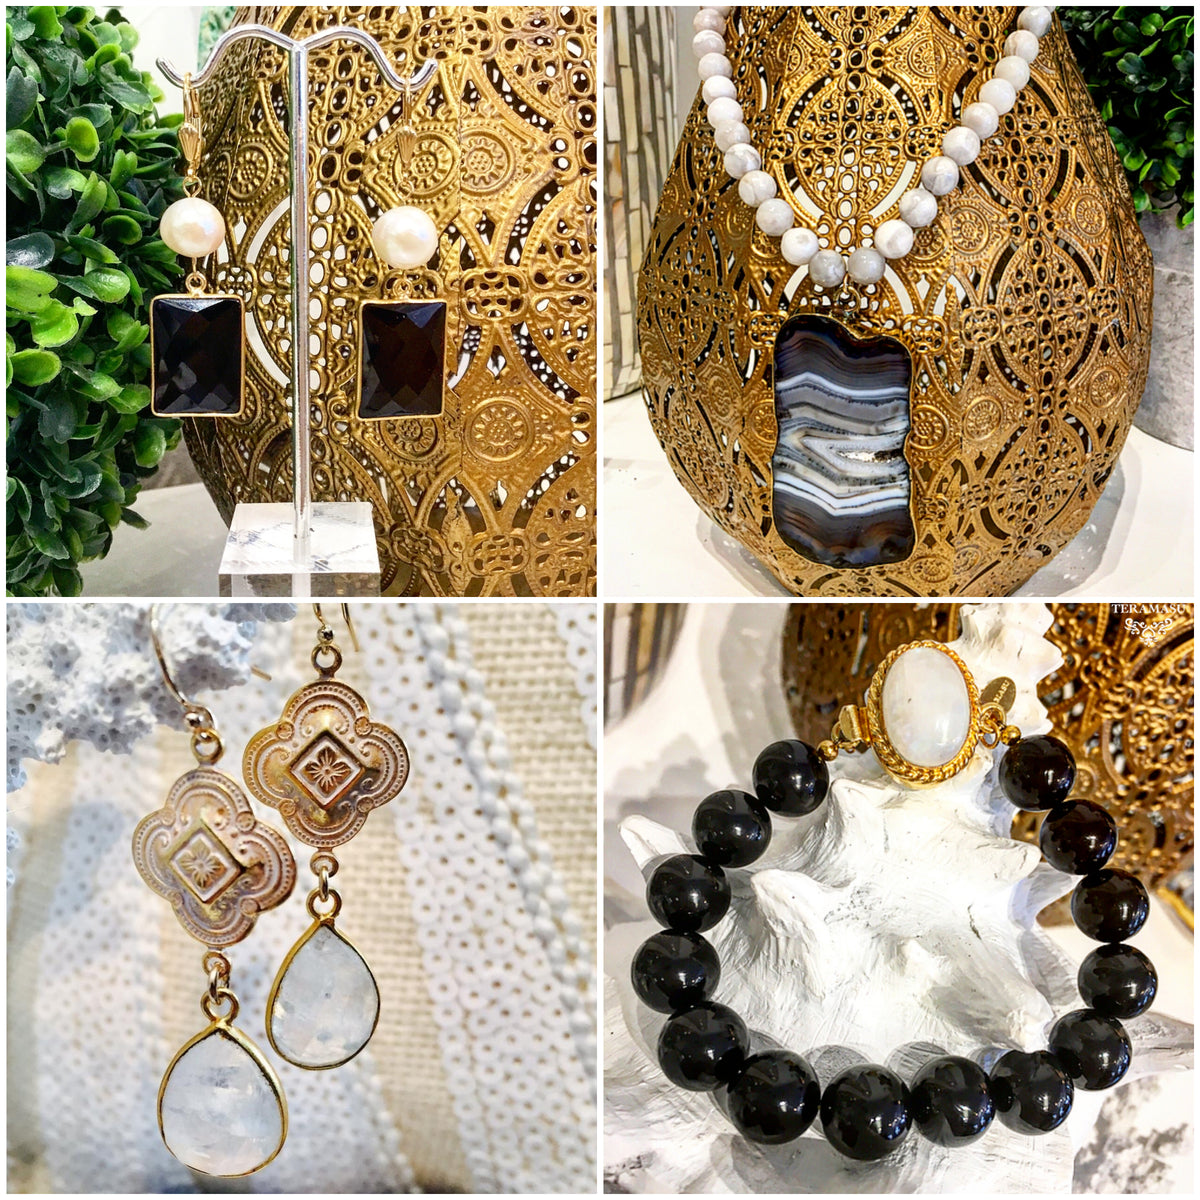 Chic Peek: Gorgeous Black & White Statement Jewelry Inspiration for Your Fall Style from Teramasu